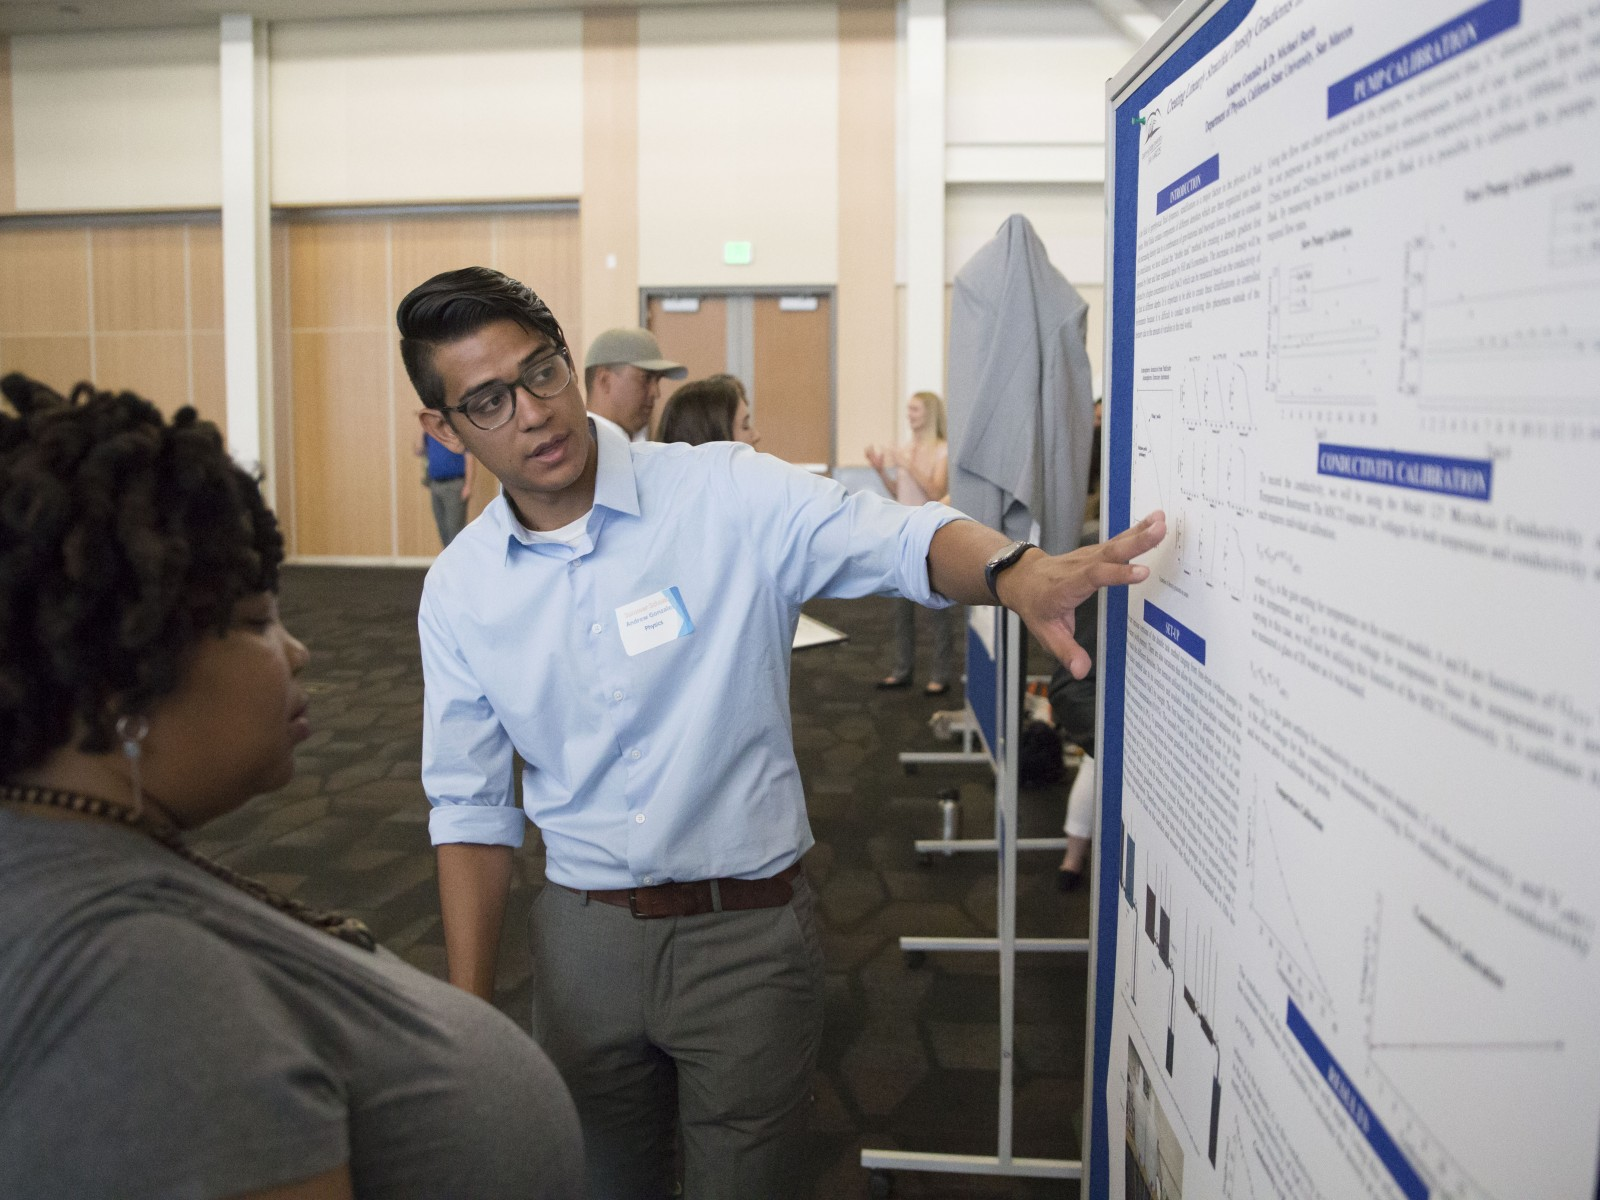 Summer Scholars Poster Showcase